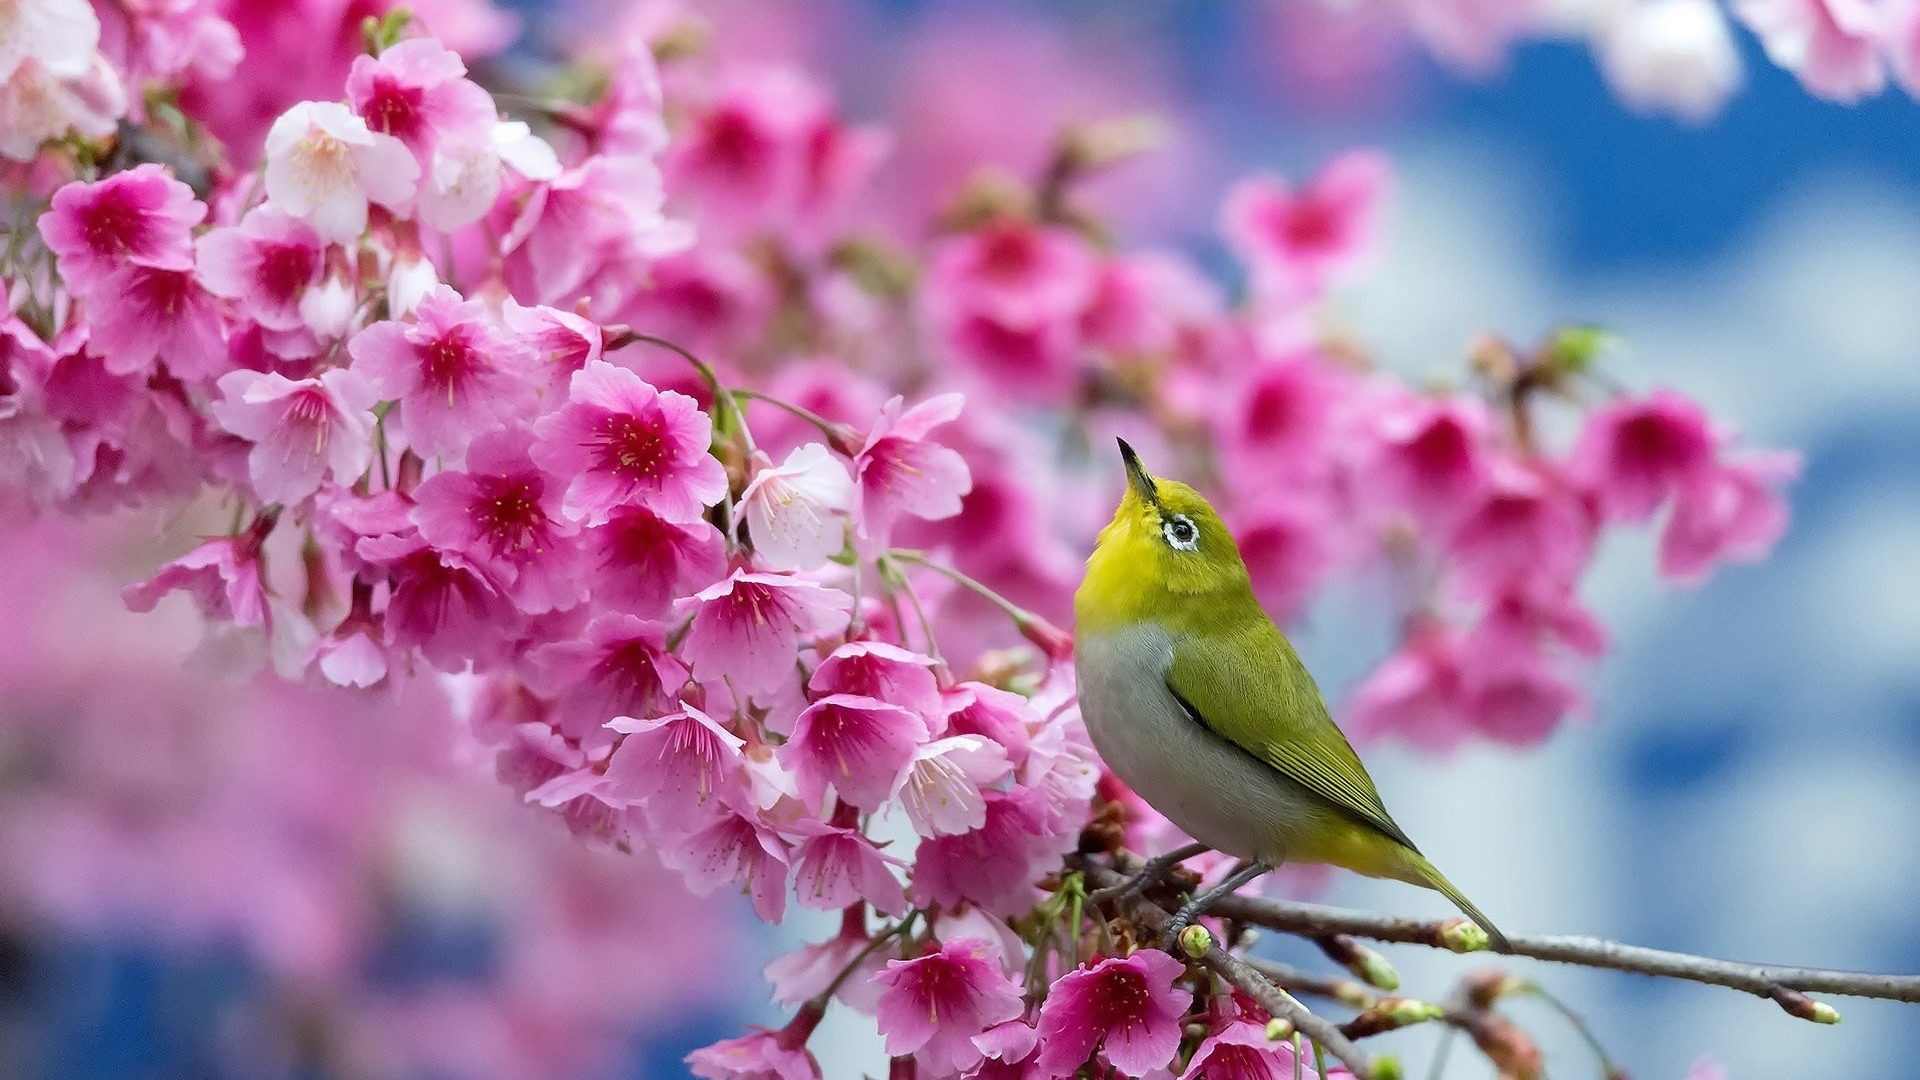 1920x1080 #224477 Color - Bird Flowers Flower Cherry Beauty Blossom Spring Branch Japanese  Wallpaper Photo Nature